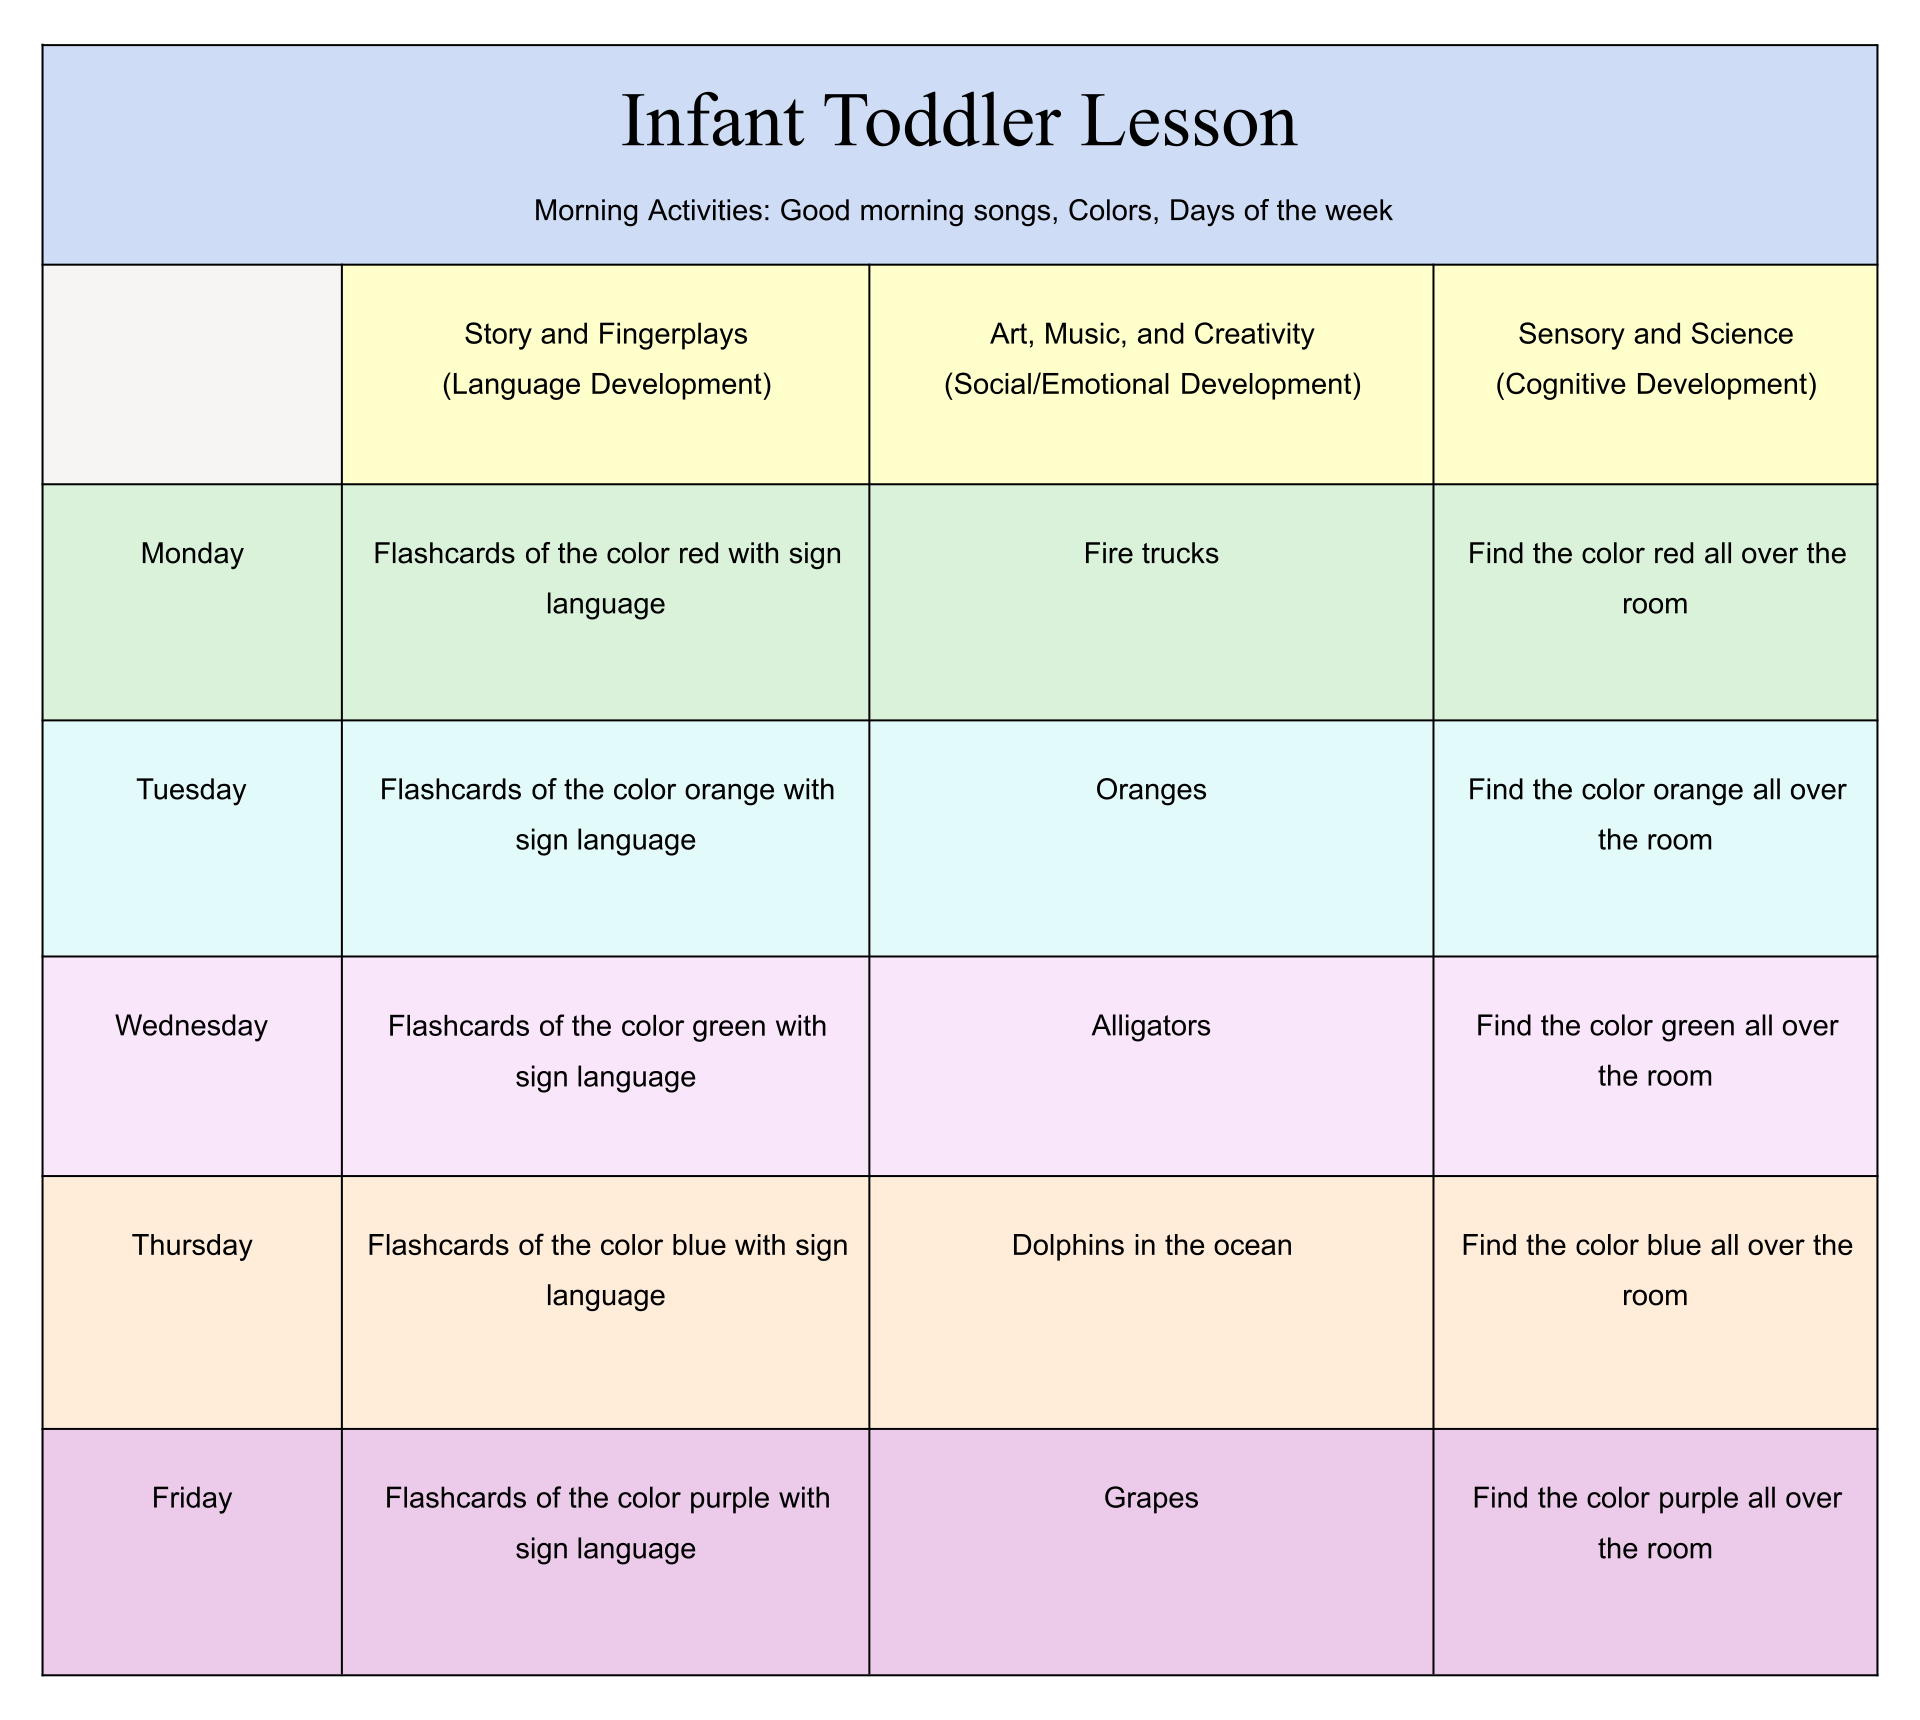 Infant Toddler Lesson Plan Template